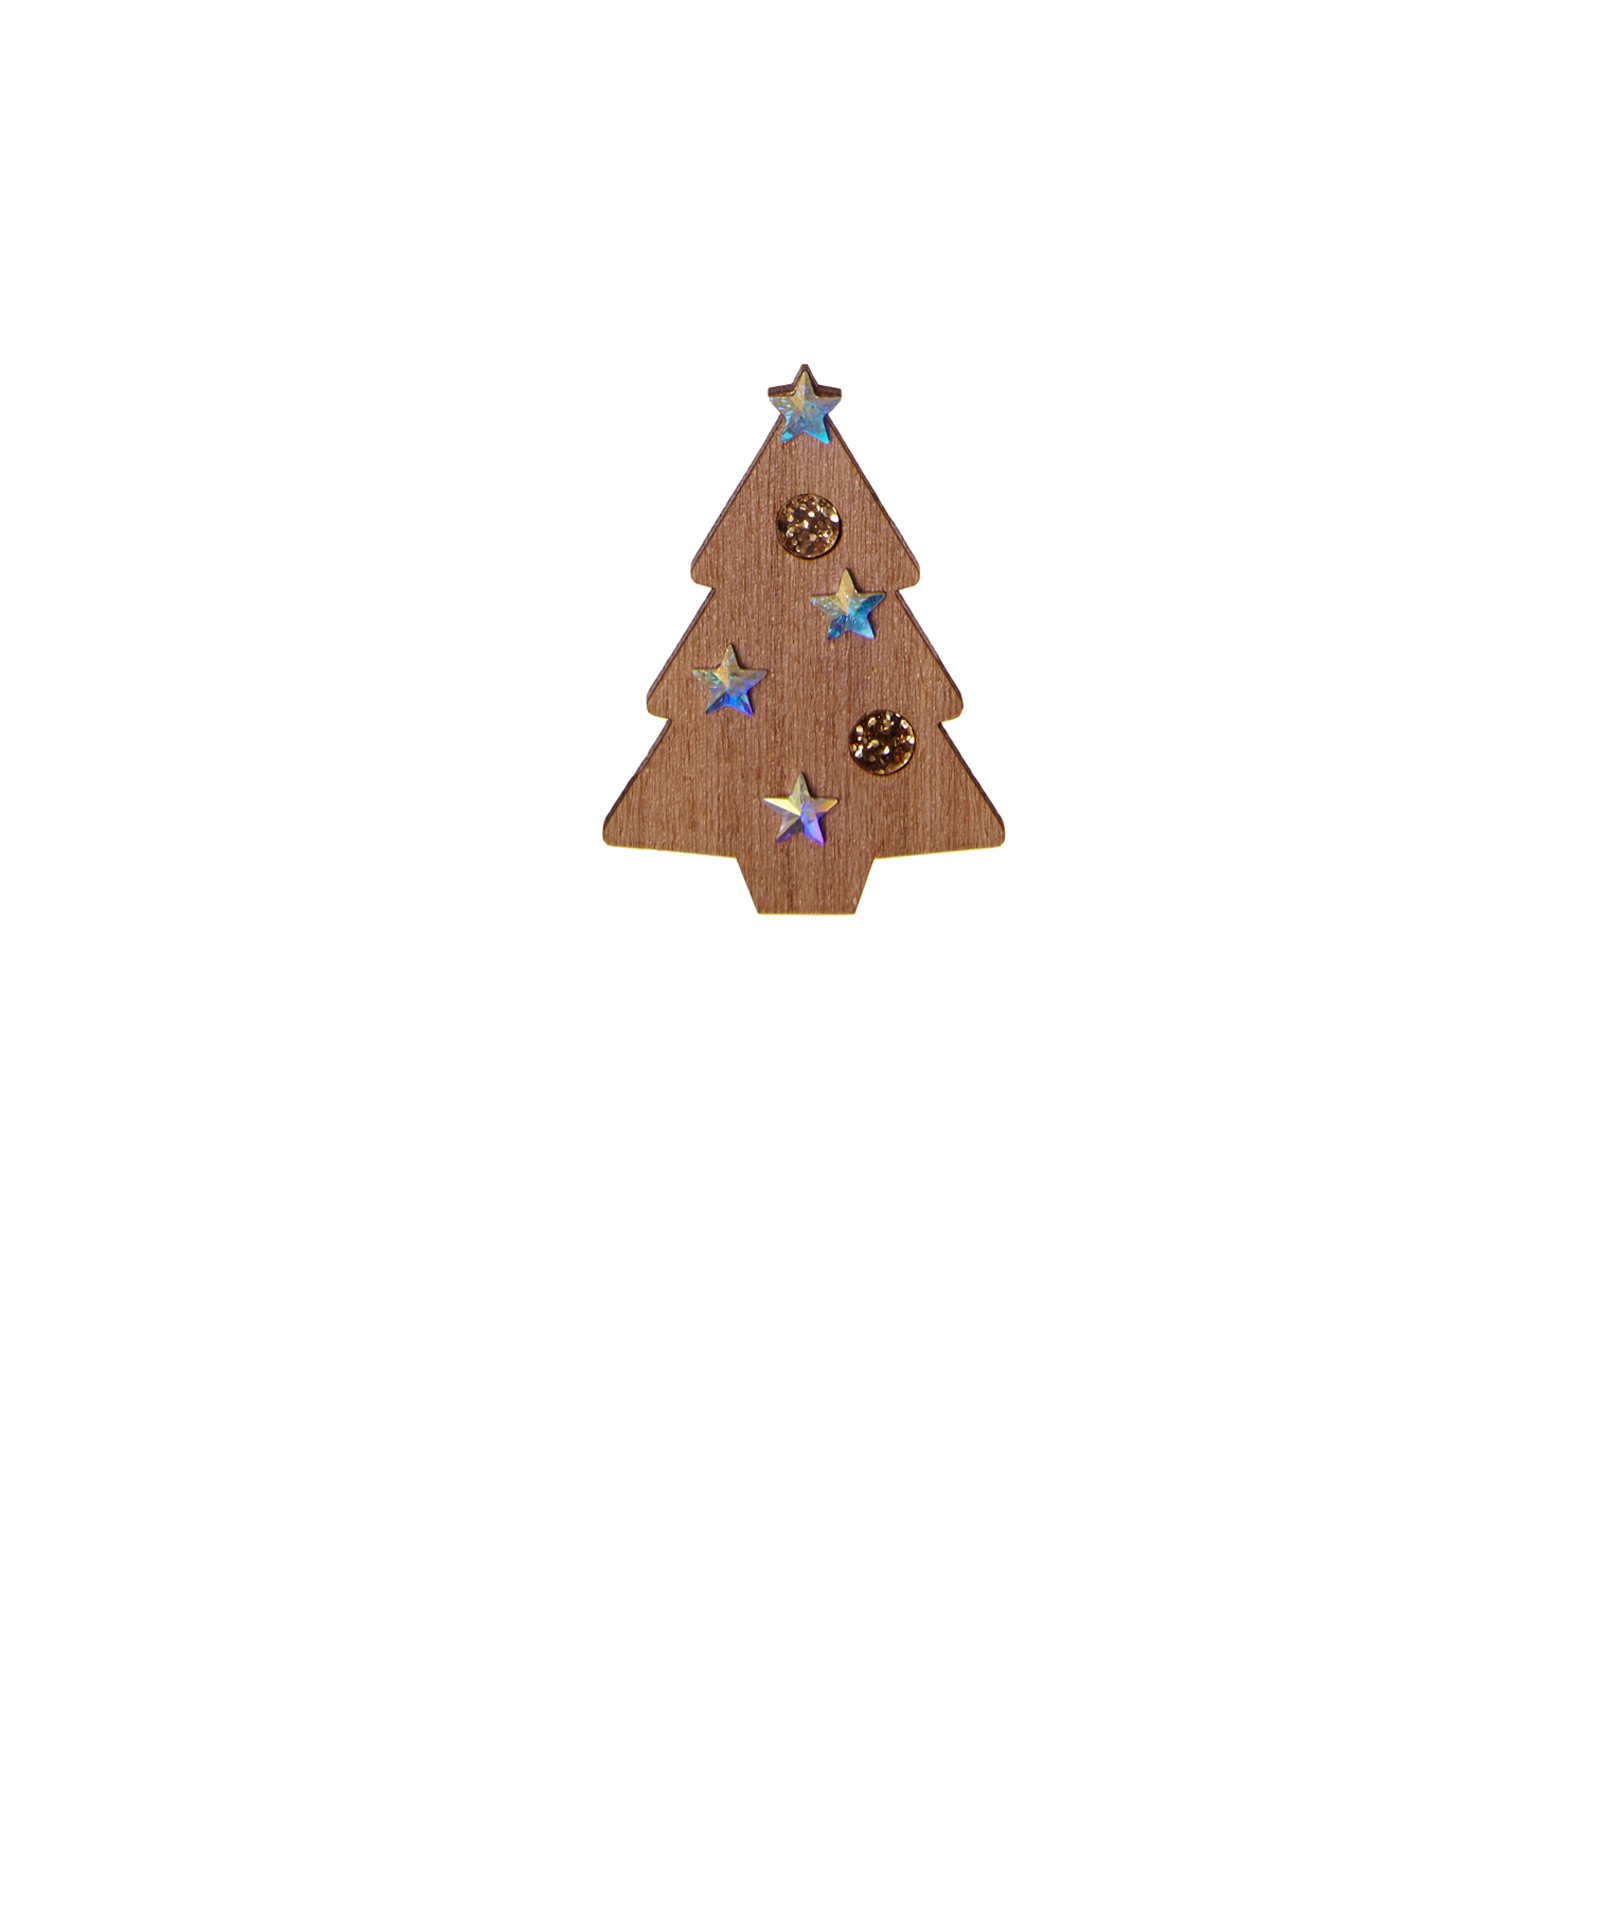 Christmas Tree Brooch - Sparkle through the festive season with the Christmas Tree Brooch. A classic silhouette is laser cut in smooth wood, decorated with glitter gold acrylic inlays and sparkling Swarovski crystals. Pin to an Aran knit for cosy seasonal style.